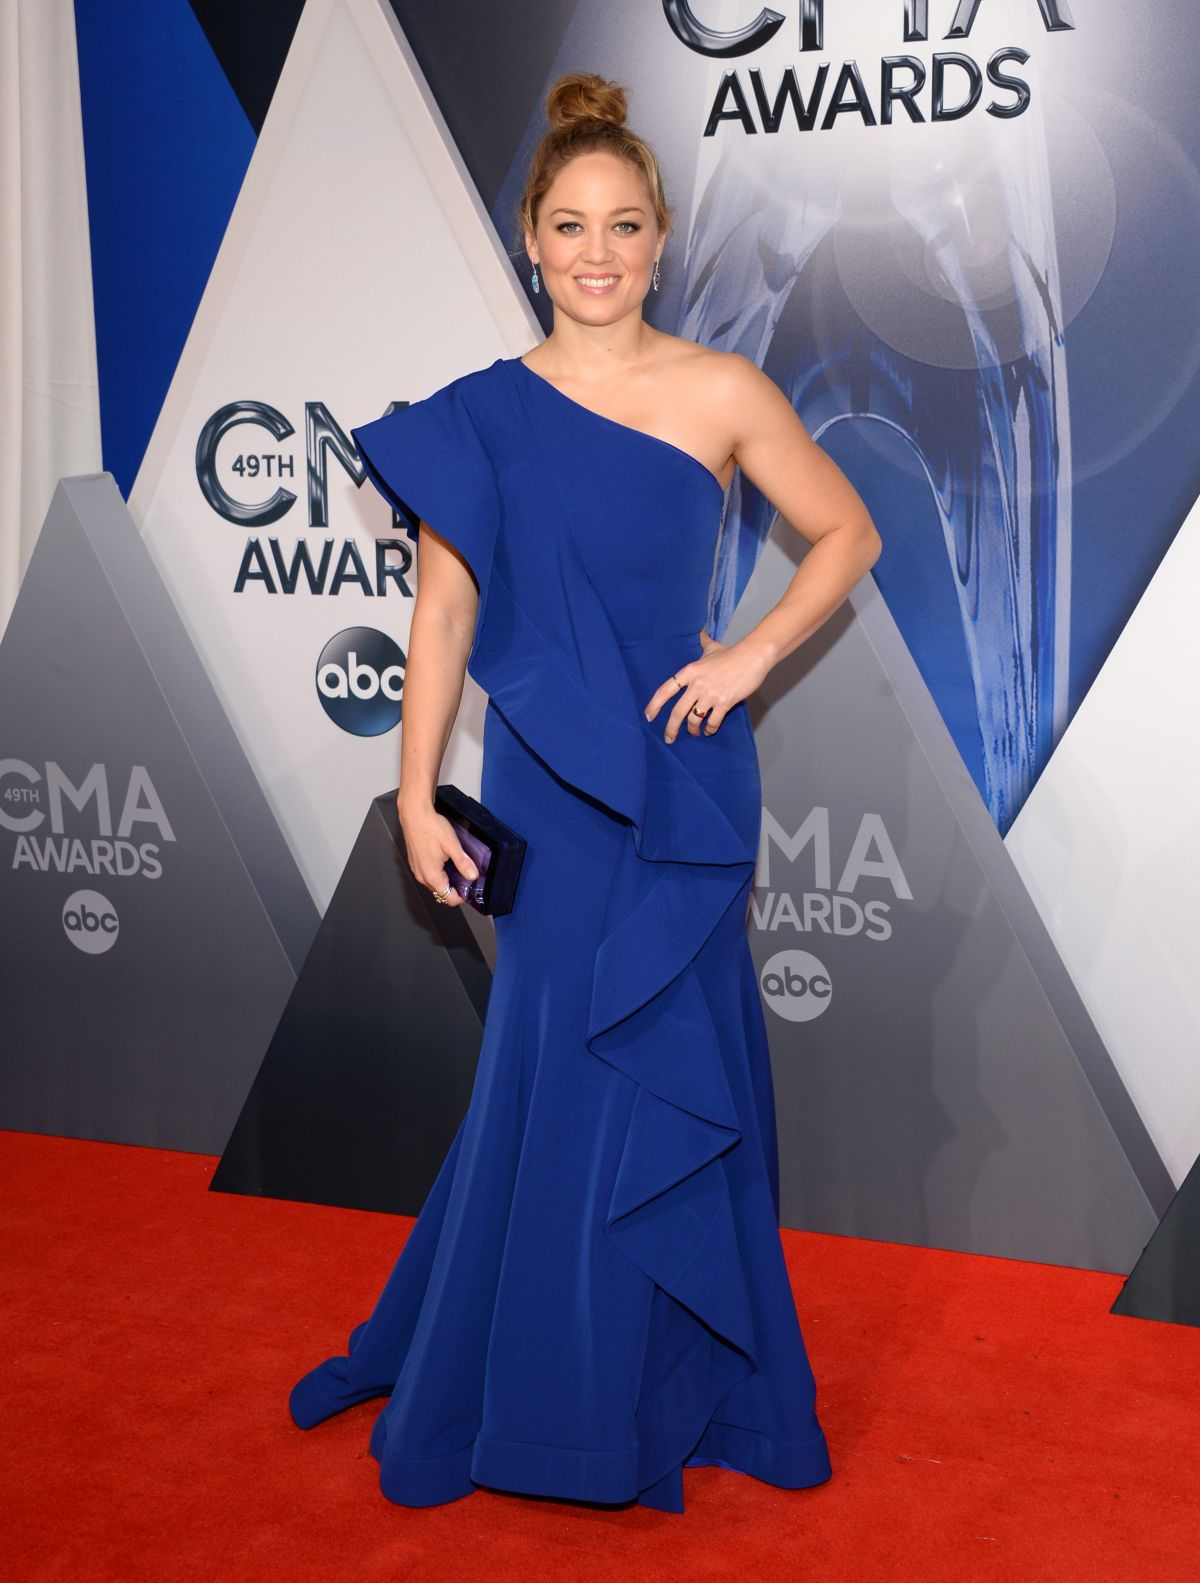 ERIKA CHRISTENSEN at 49th Annual CMA Awards in Nashville 11/04/2015